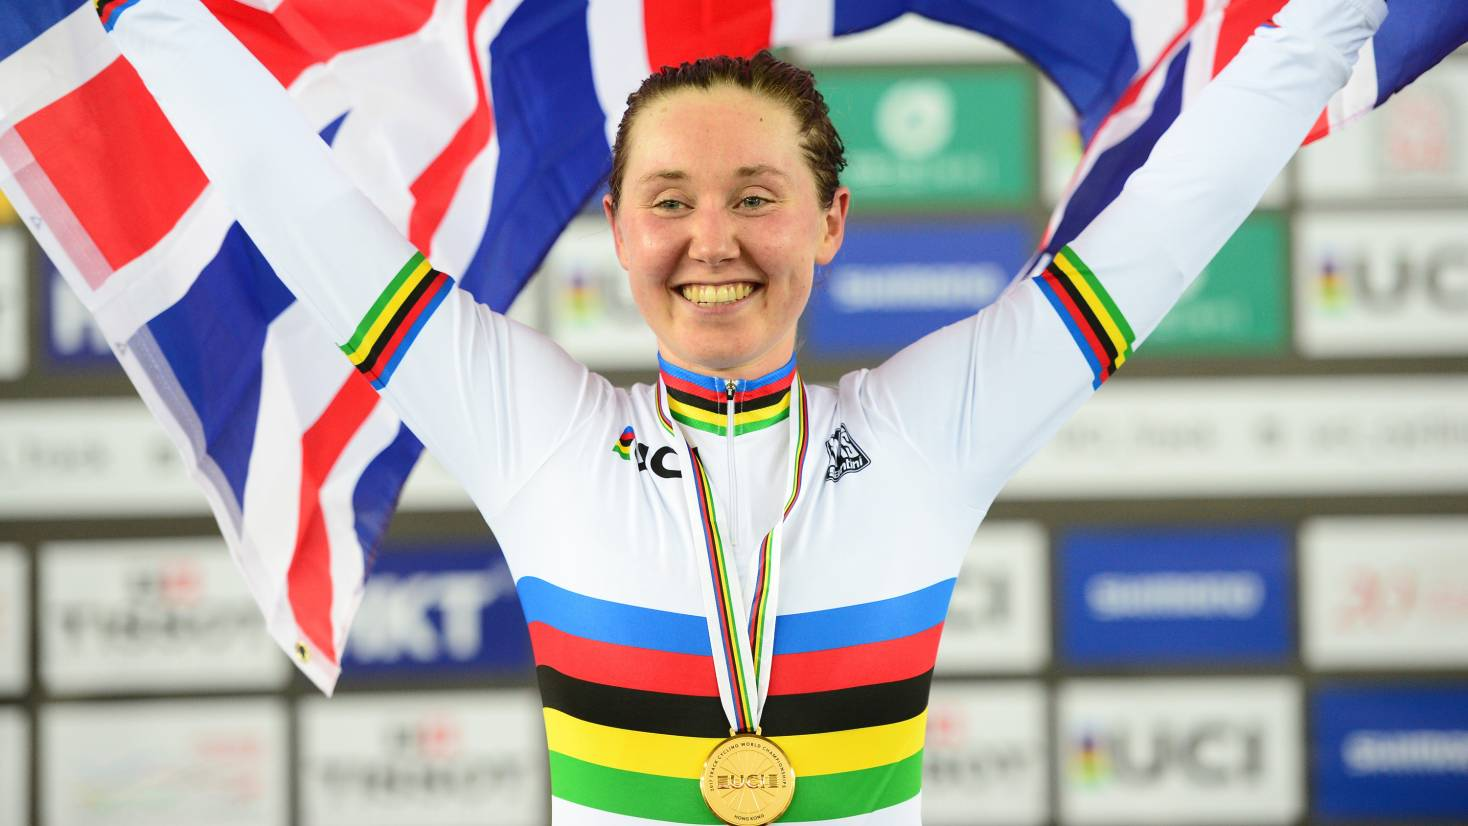 20170414_Katie_Archibald_in_the_rainbow_jersey_after_becoming_omnium_world_champion_3000.1492180912.jpg